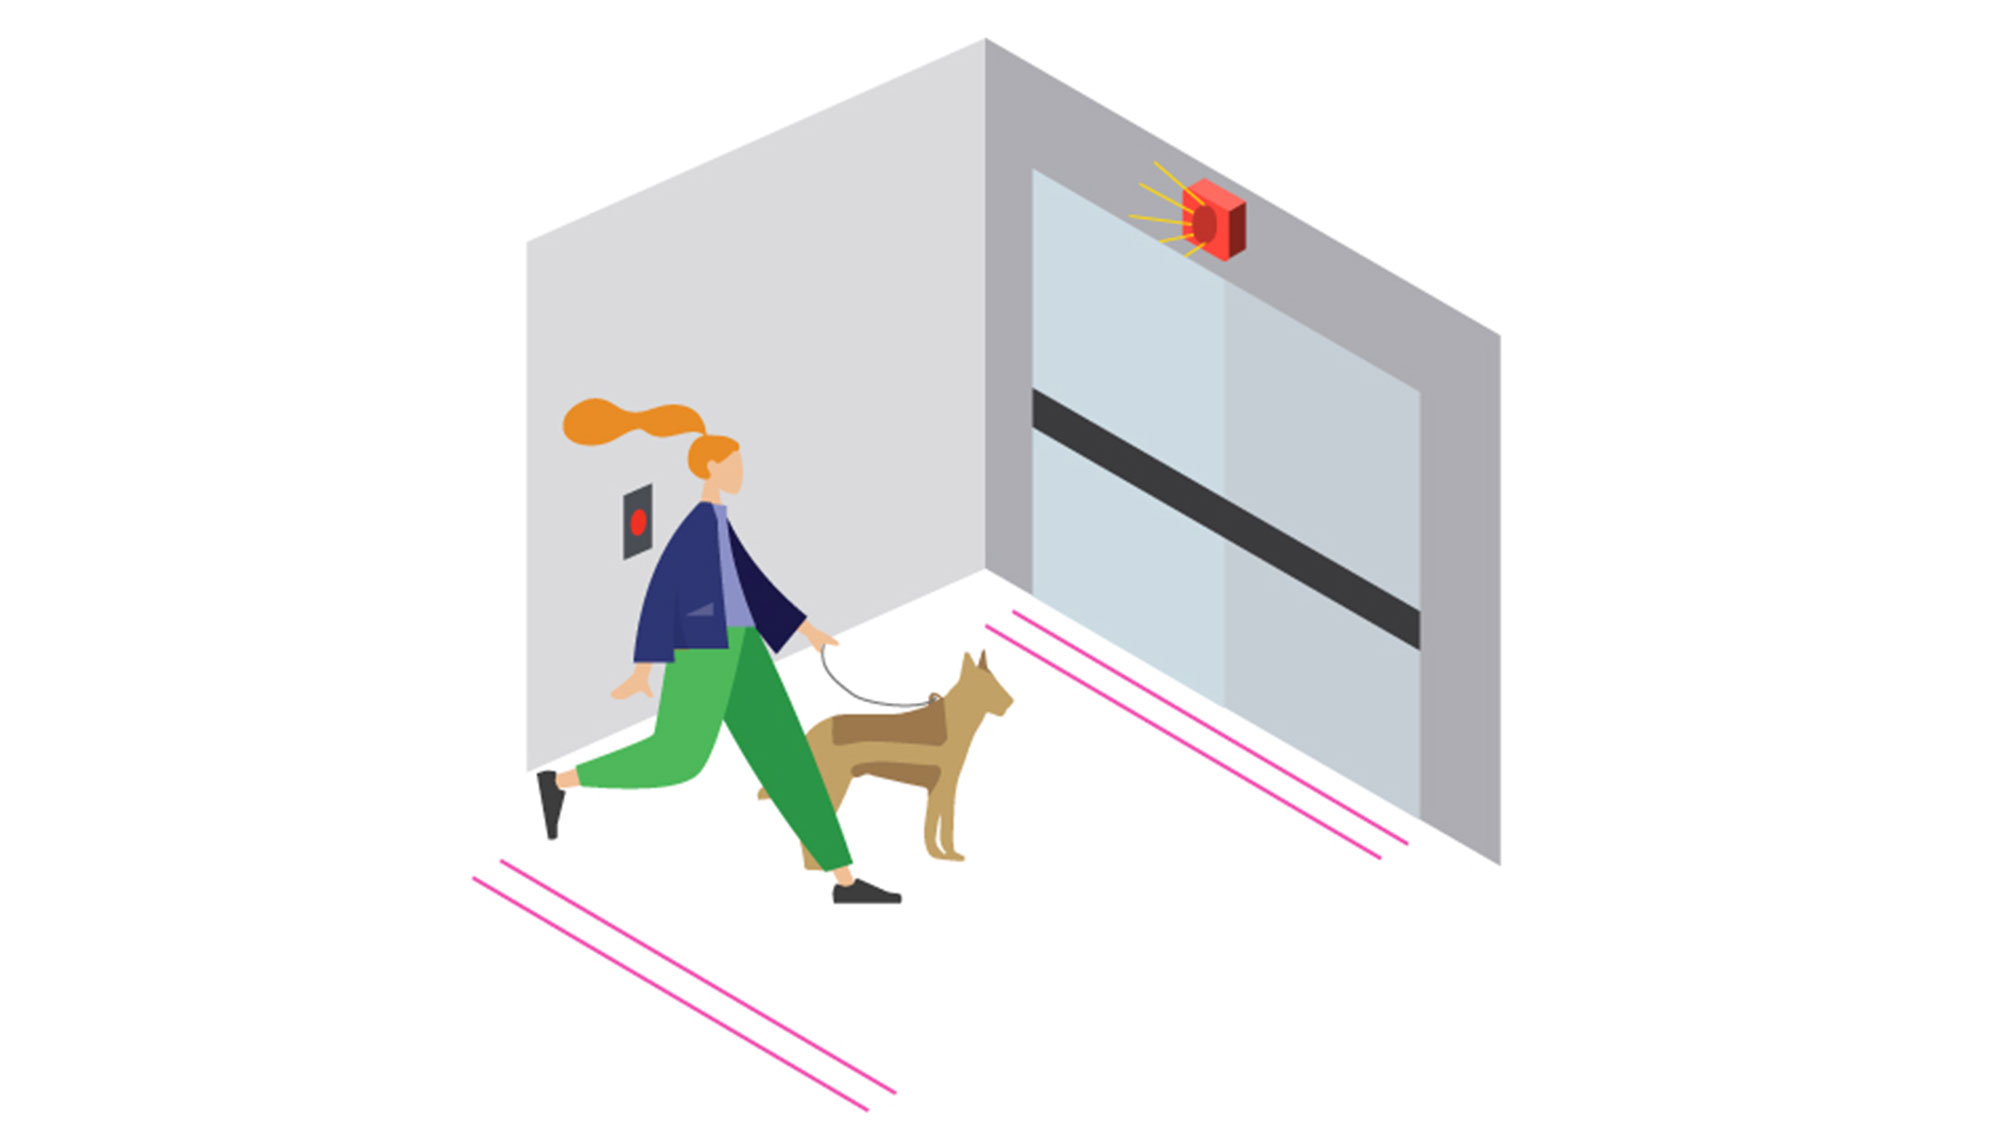 A graphic illustration of a person with a service animal walking towards an exit with lines on the floor indicating spacing for physical distancing.